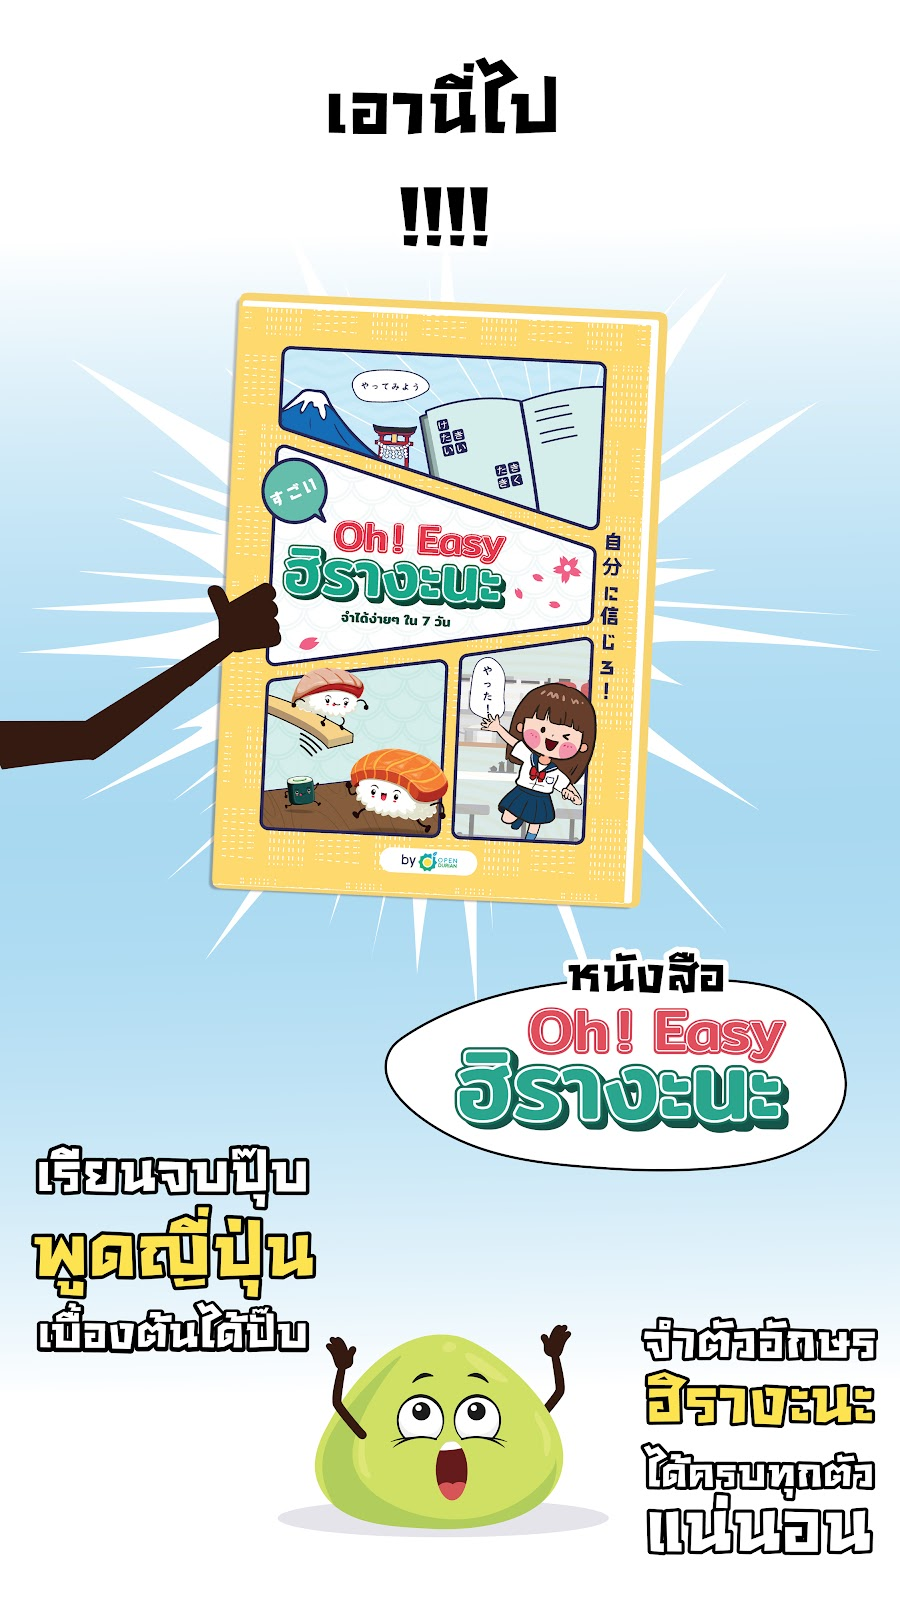 Wasabi character give Oh! Easy Hiragana book to Shoyu character to start learning Japanese and said that Oh! Easy Hiragana book will make you be able to speak Japanese and also remember all of the Hiragana character.